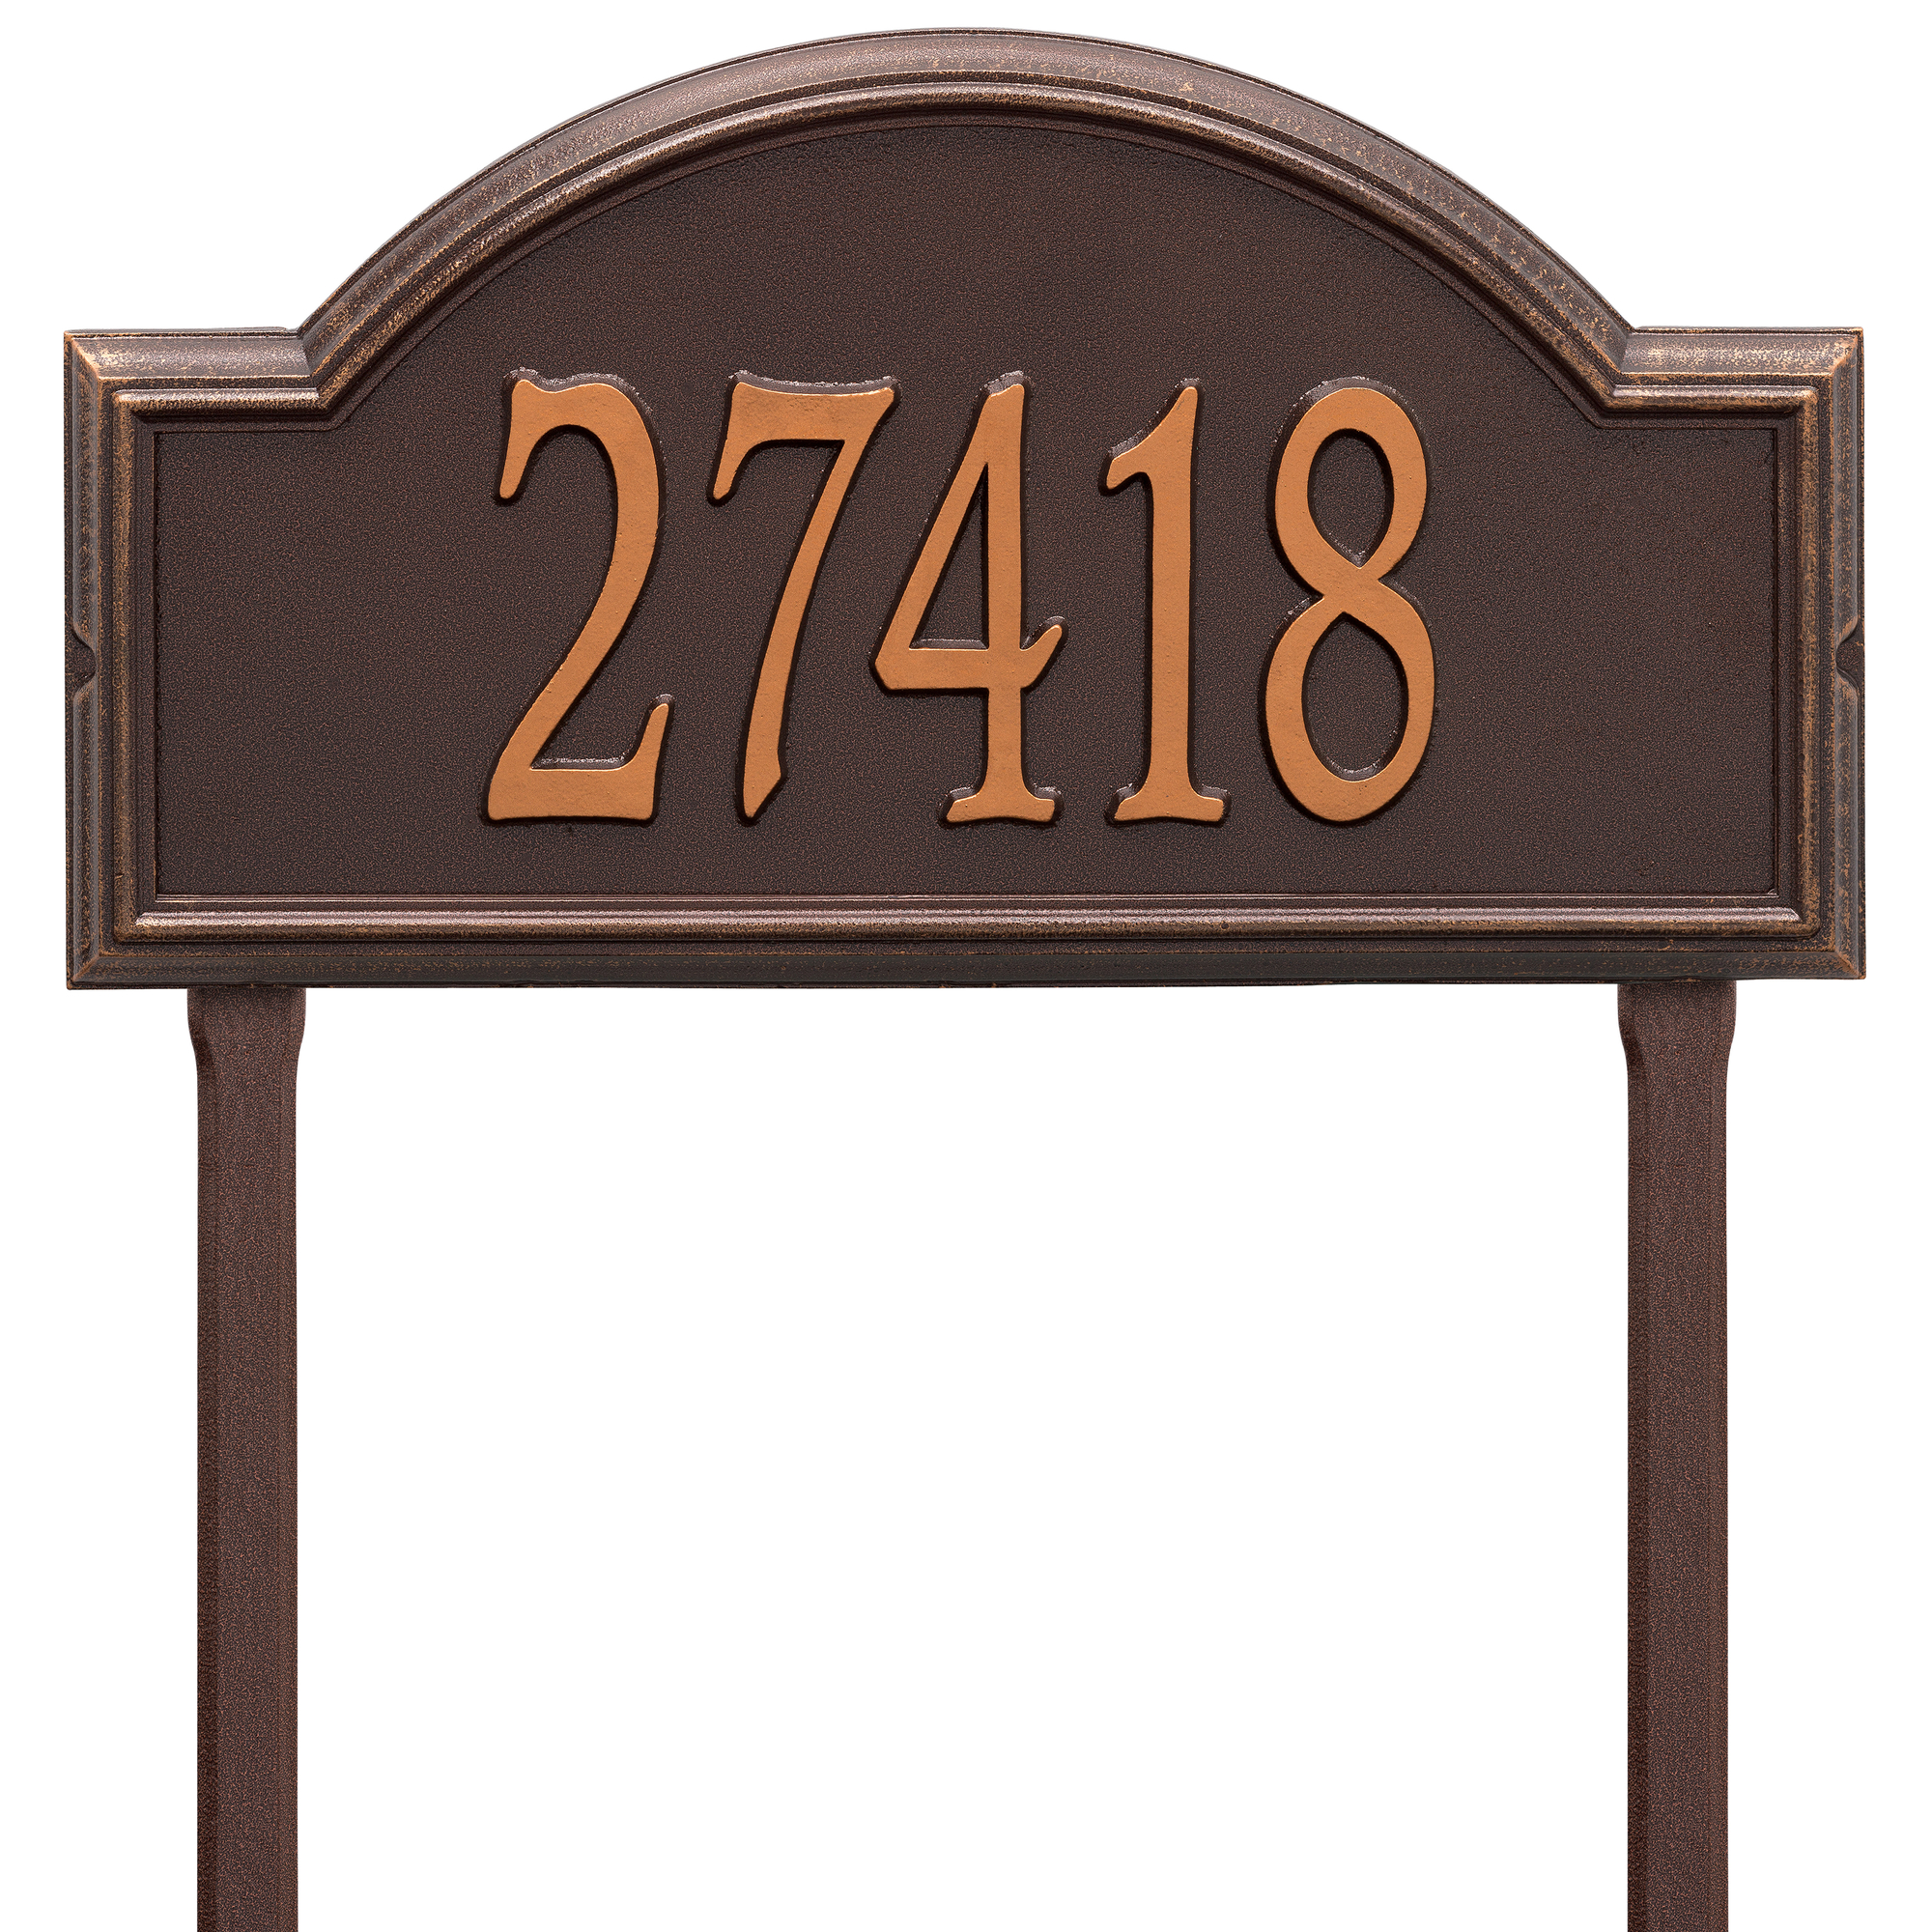 Personalized Whitehall Products Providence Arch Address Plaque in Copper by Whitehall